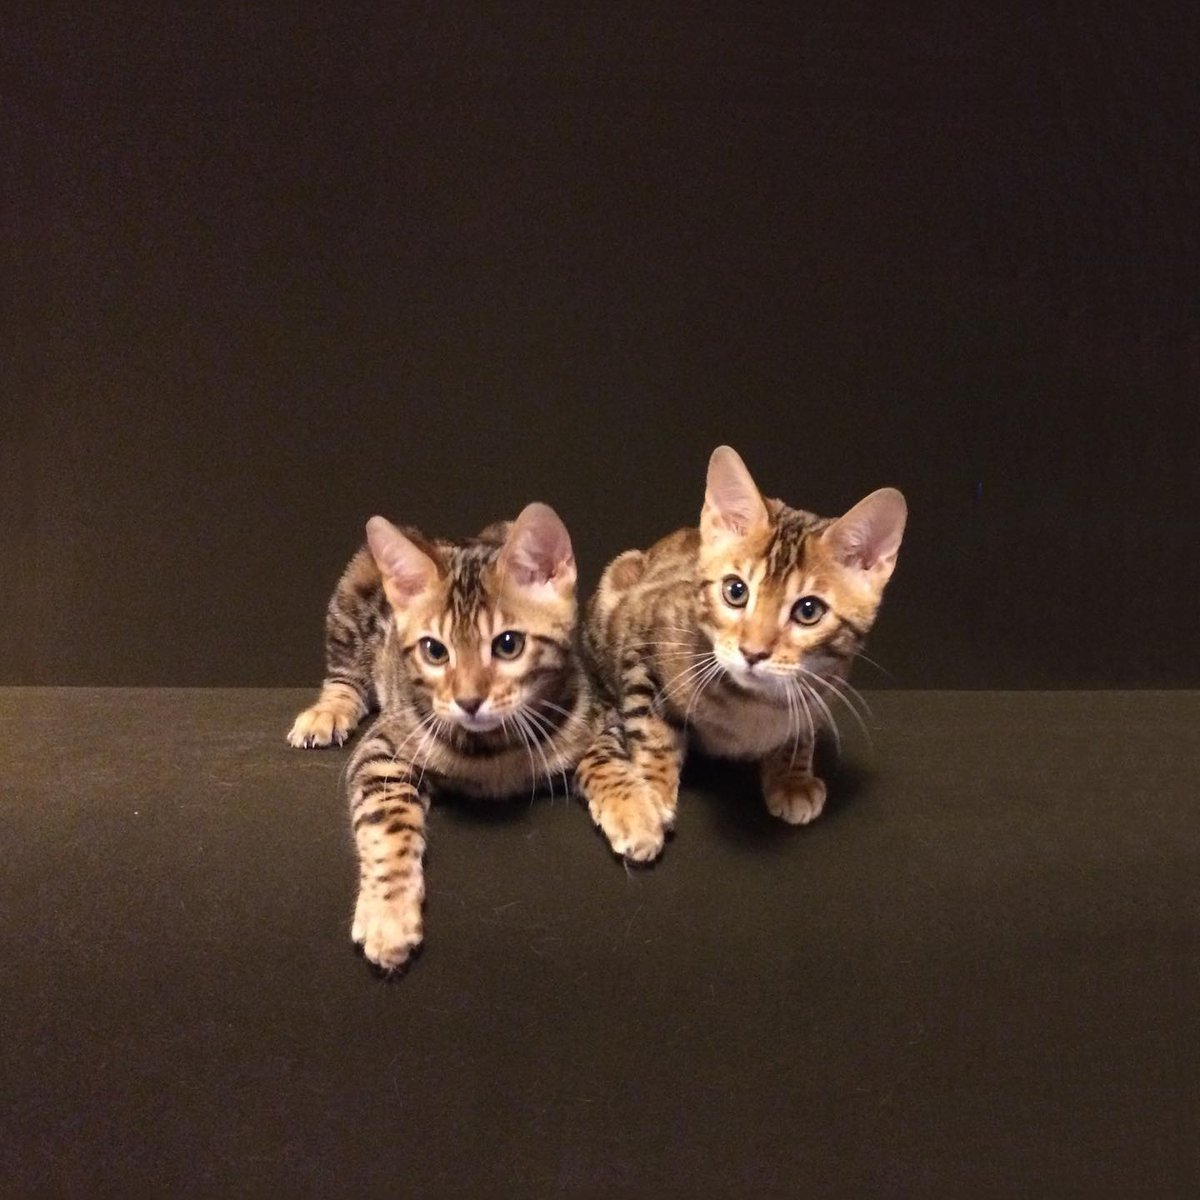 Two Bengal Brothers #paintedcatswi #cats #kittens #bengalcatworld #bengalworld #petsofinstagram #bengal #kittylove #catloversclub #catworld #catlife #cutecatcrew #kittenlove #cutekitty #bengals #bengalkitten #bengalcat #meowsandwoofs #catsofinstagram #weeklyfluff #cat_features